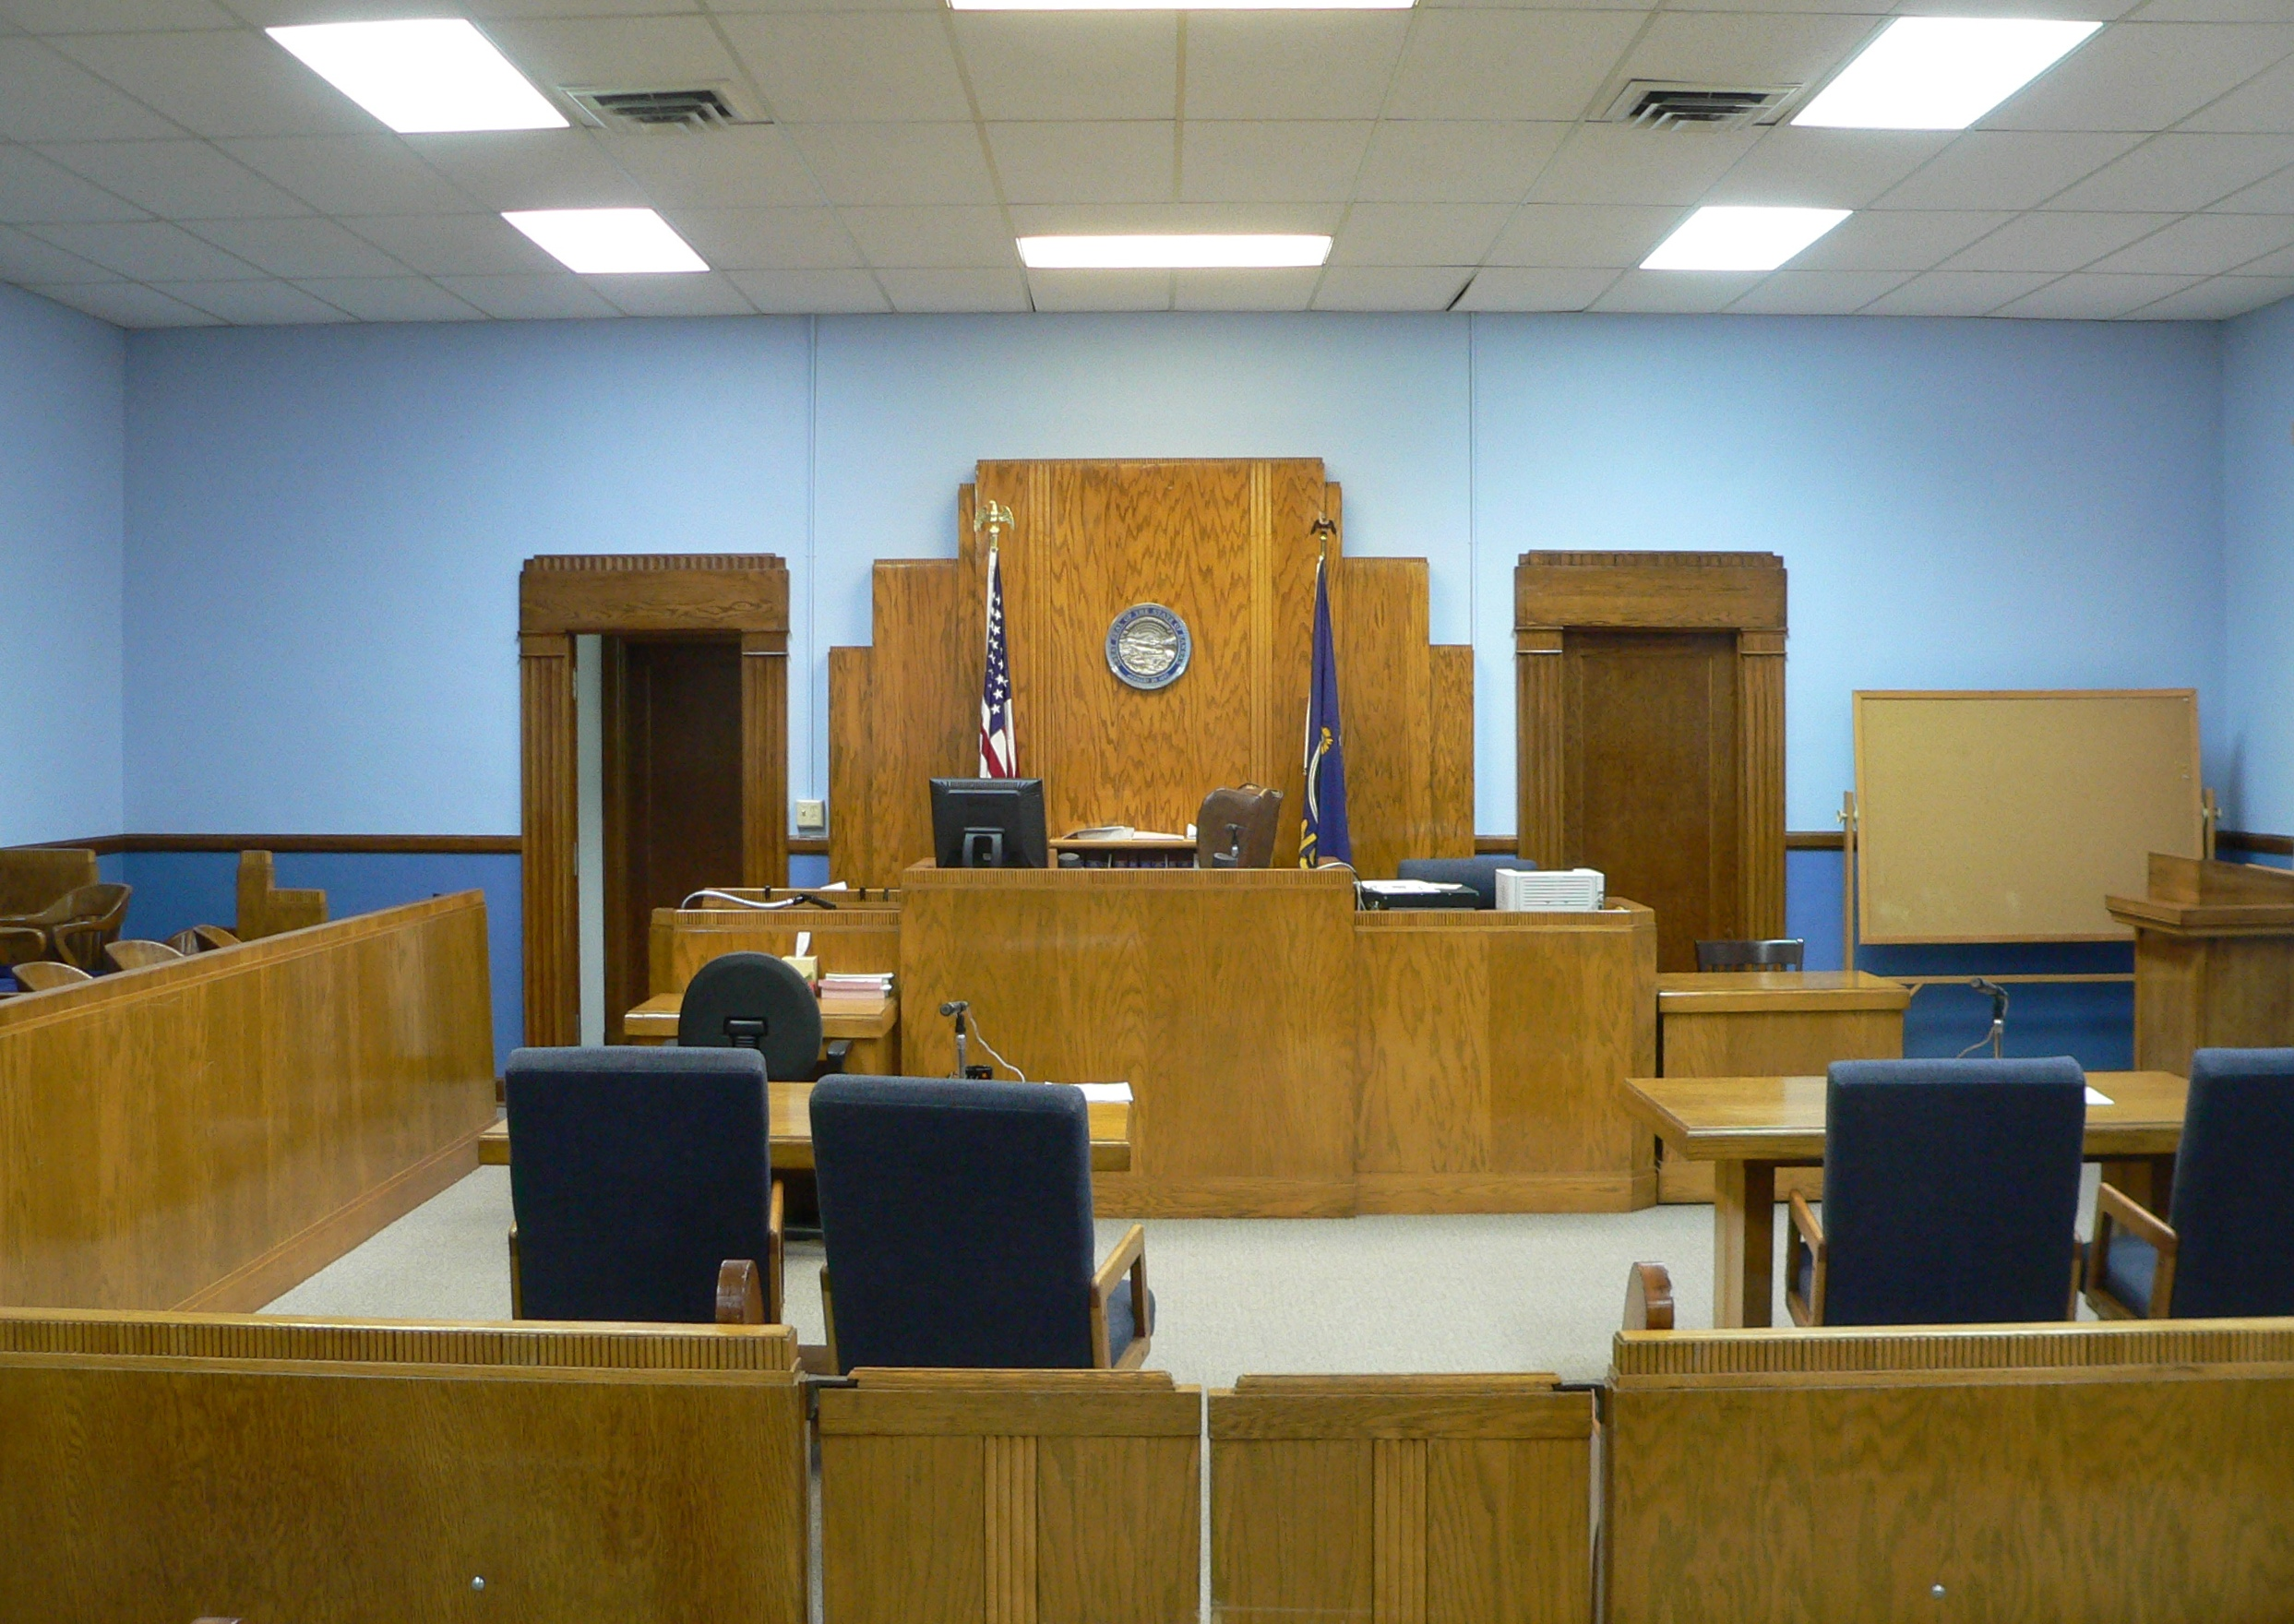 court room observation conclusion Courtroom intelligence offers a full range of trial consulting services, including:   mock jury studies focus group research courtroom observation jury selection   opening statement strategy closing statement strategy courtroom graphics.